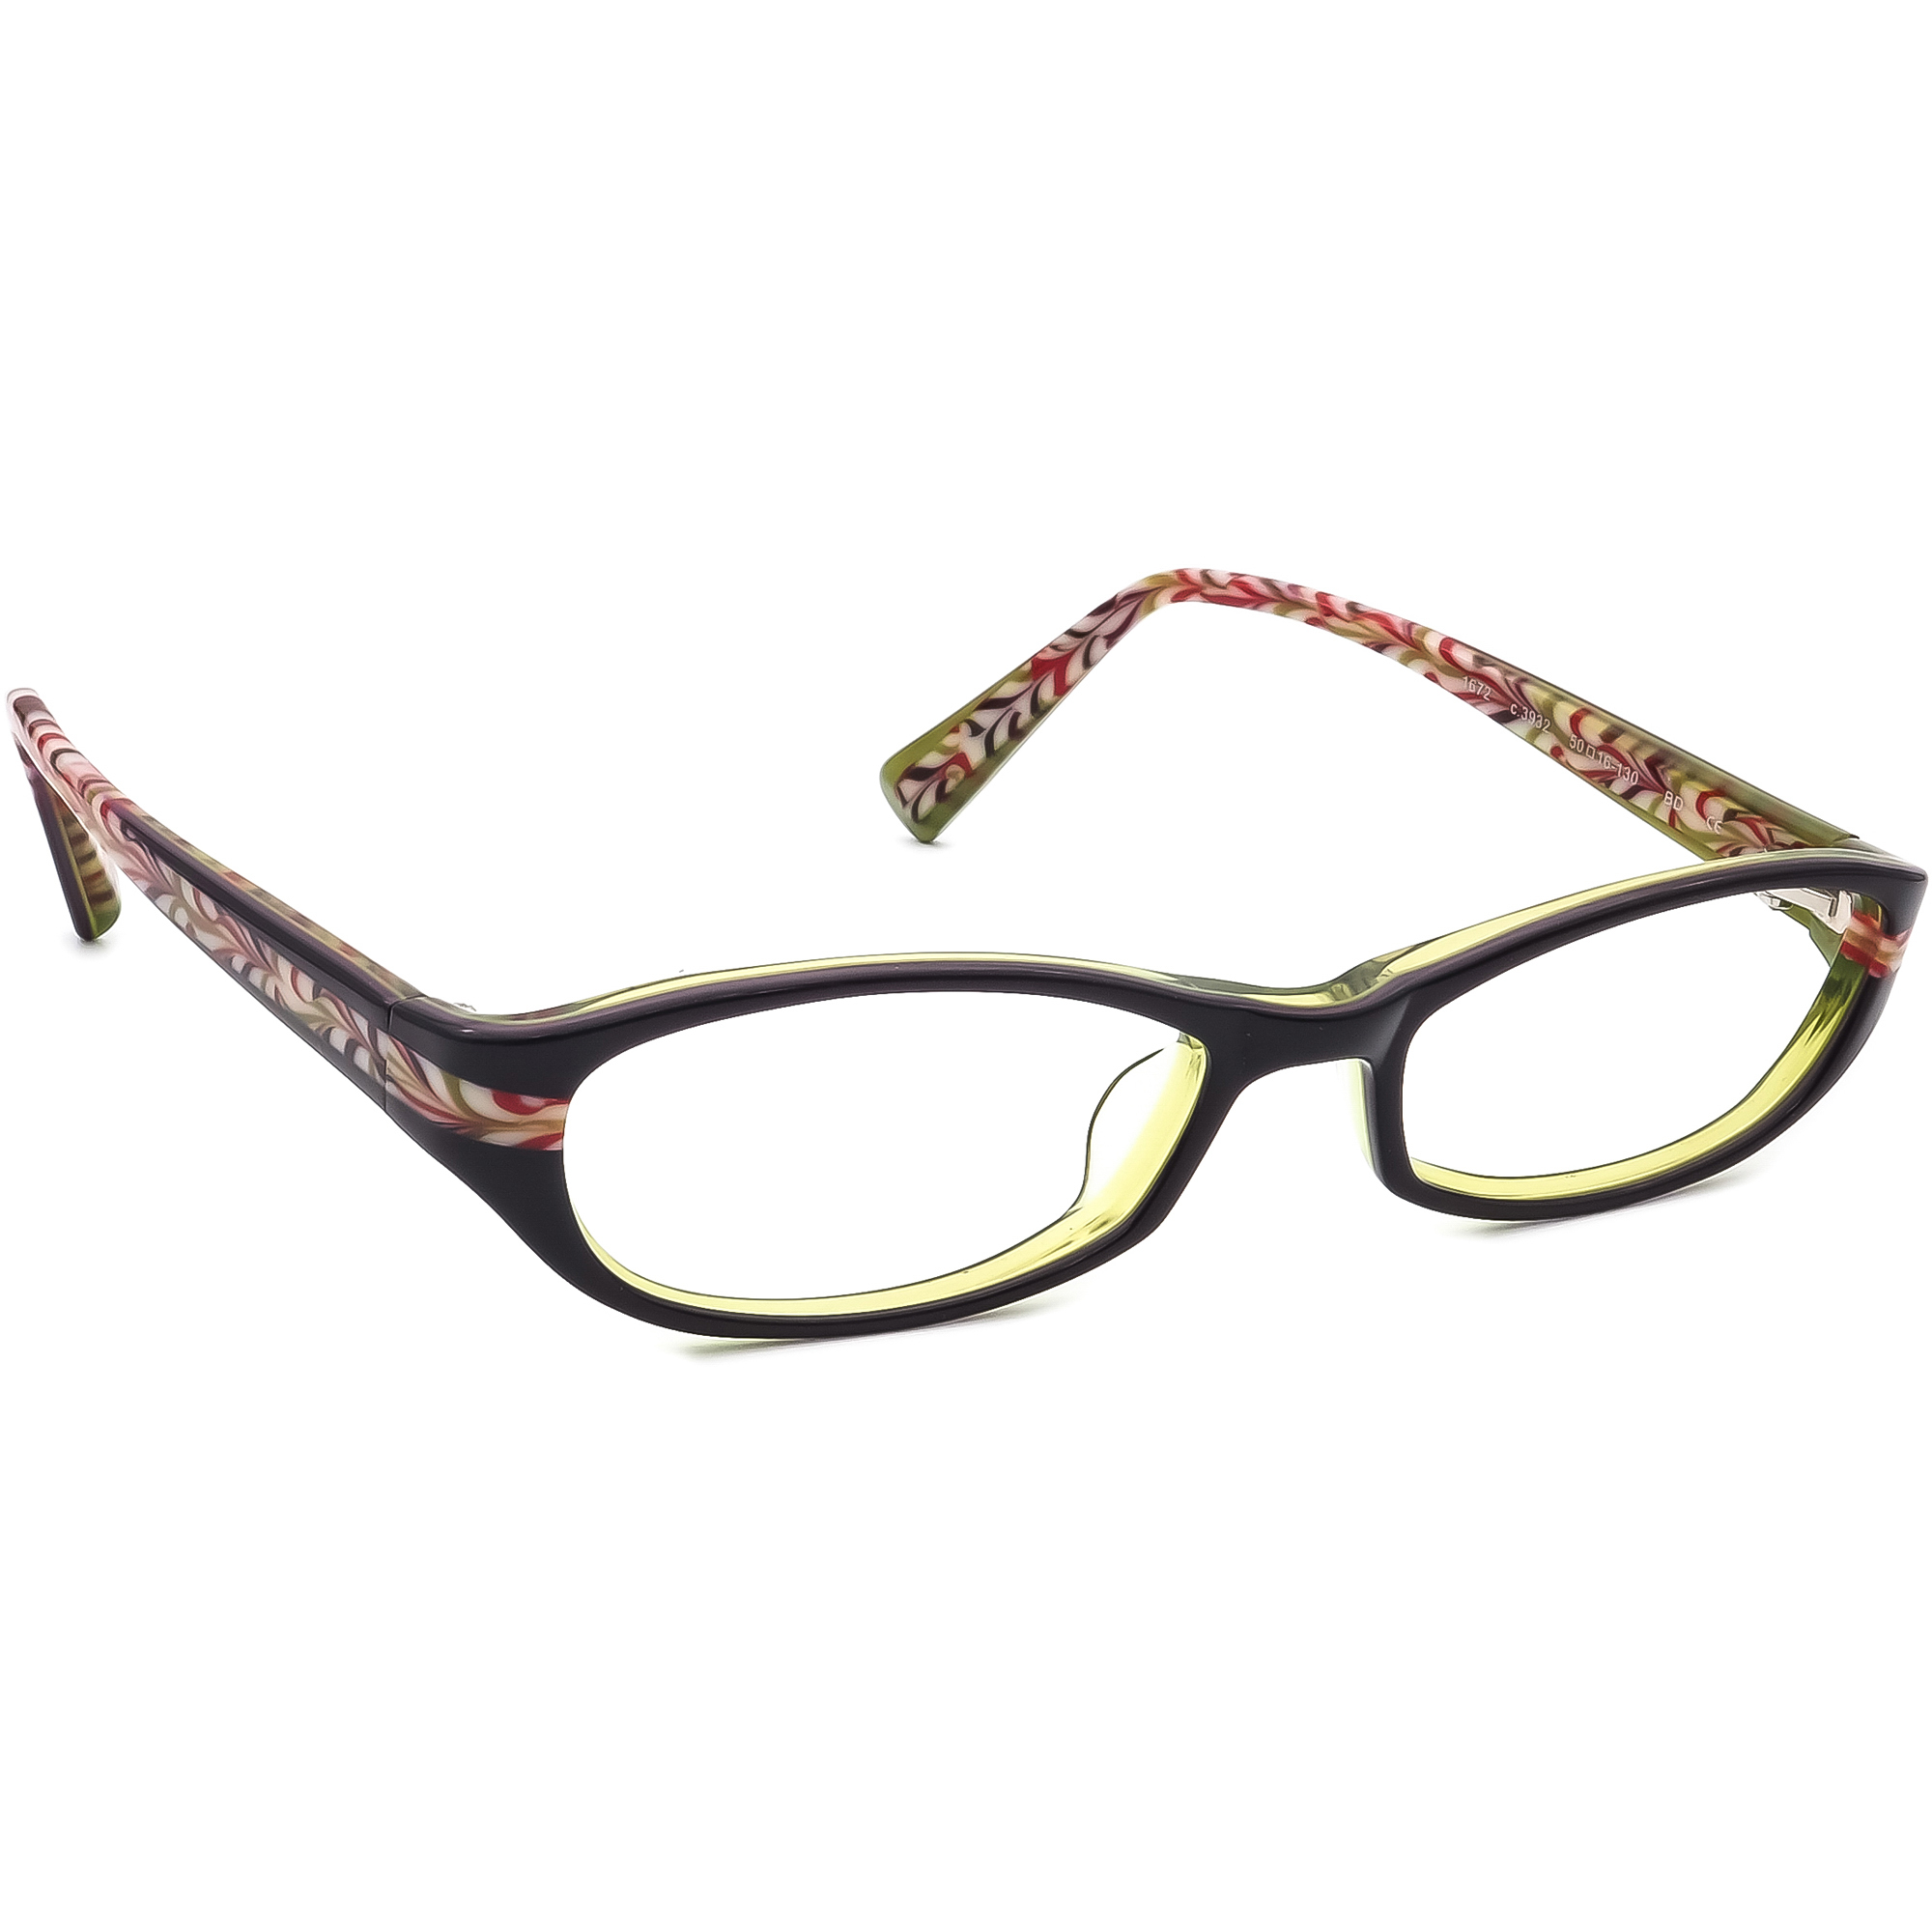 Prodesign Denmark Eyeglasses 1672 C.3932 Dark Aubergine/Green Japan 50[]16 130